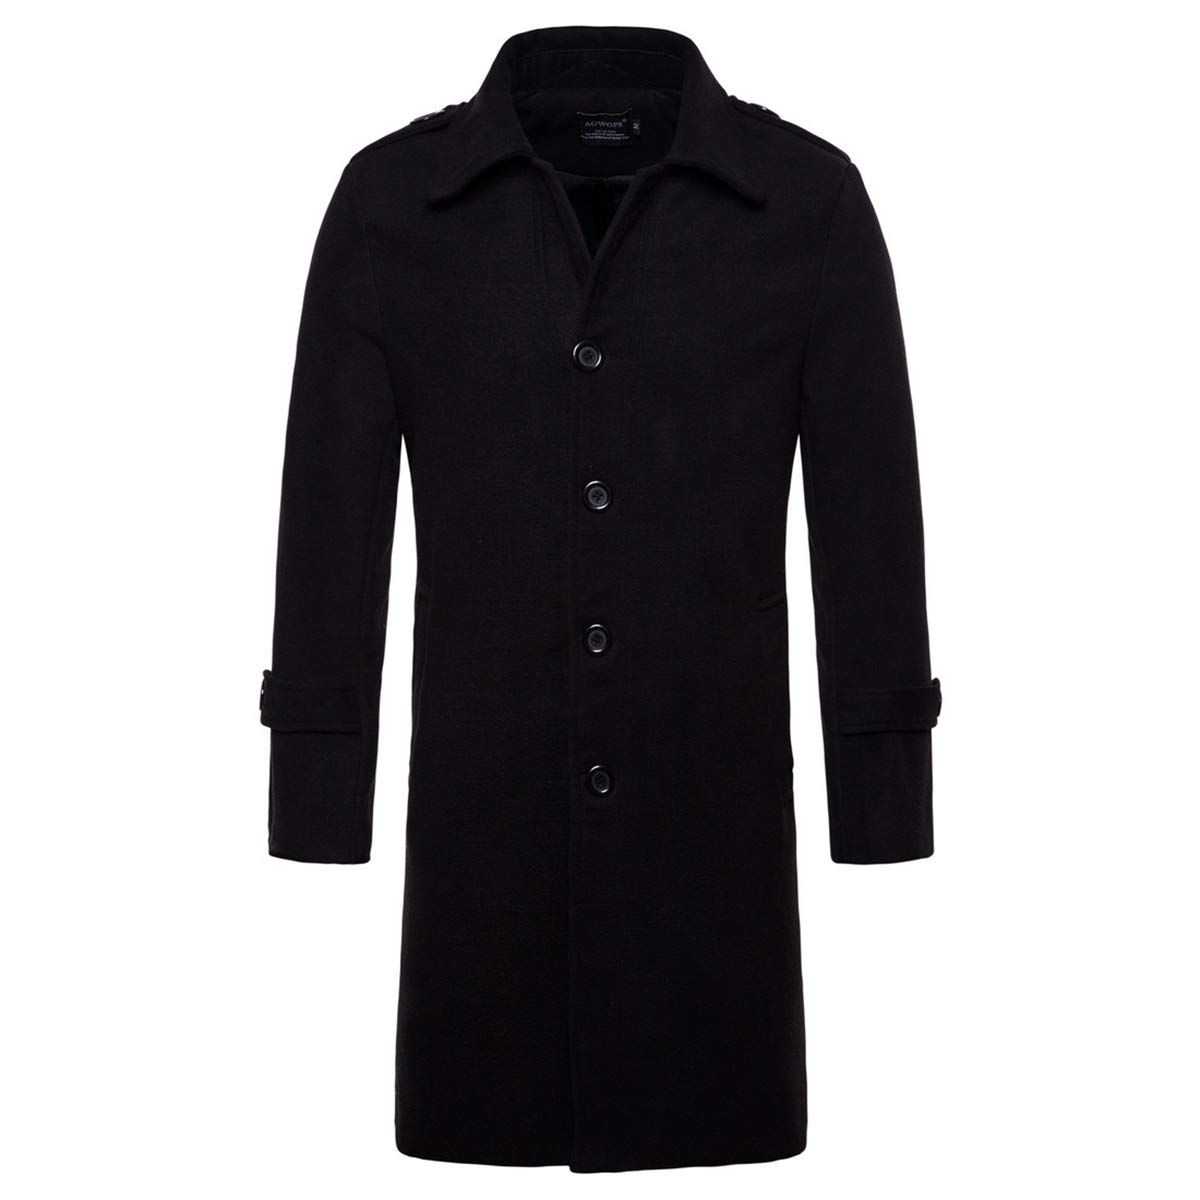 AOWOFS Men's Mid Long Wool Woolen Pea Coat Single Breasted Overcoat Winter Trench Coat Black by AOWOFS